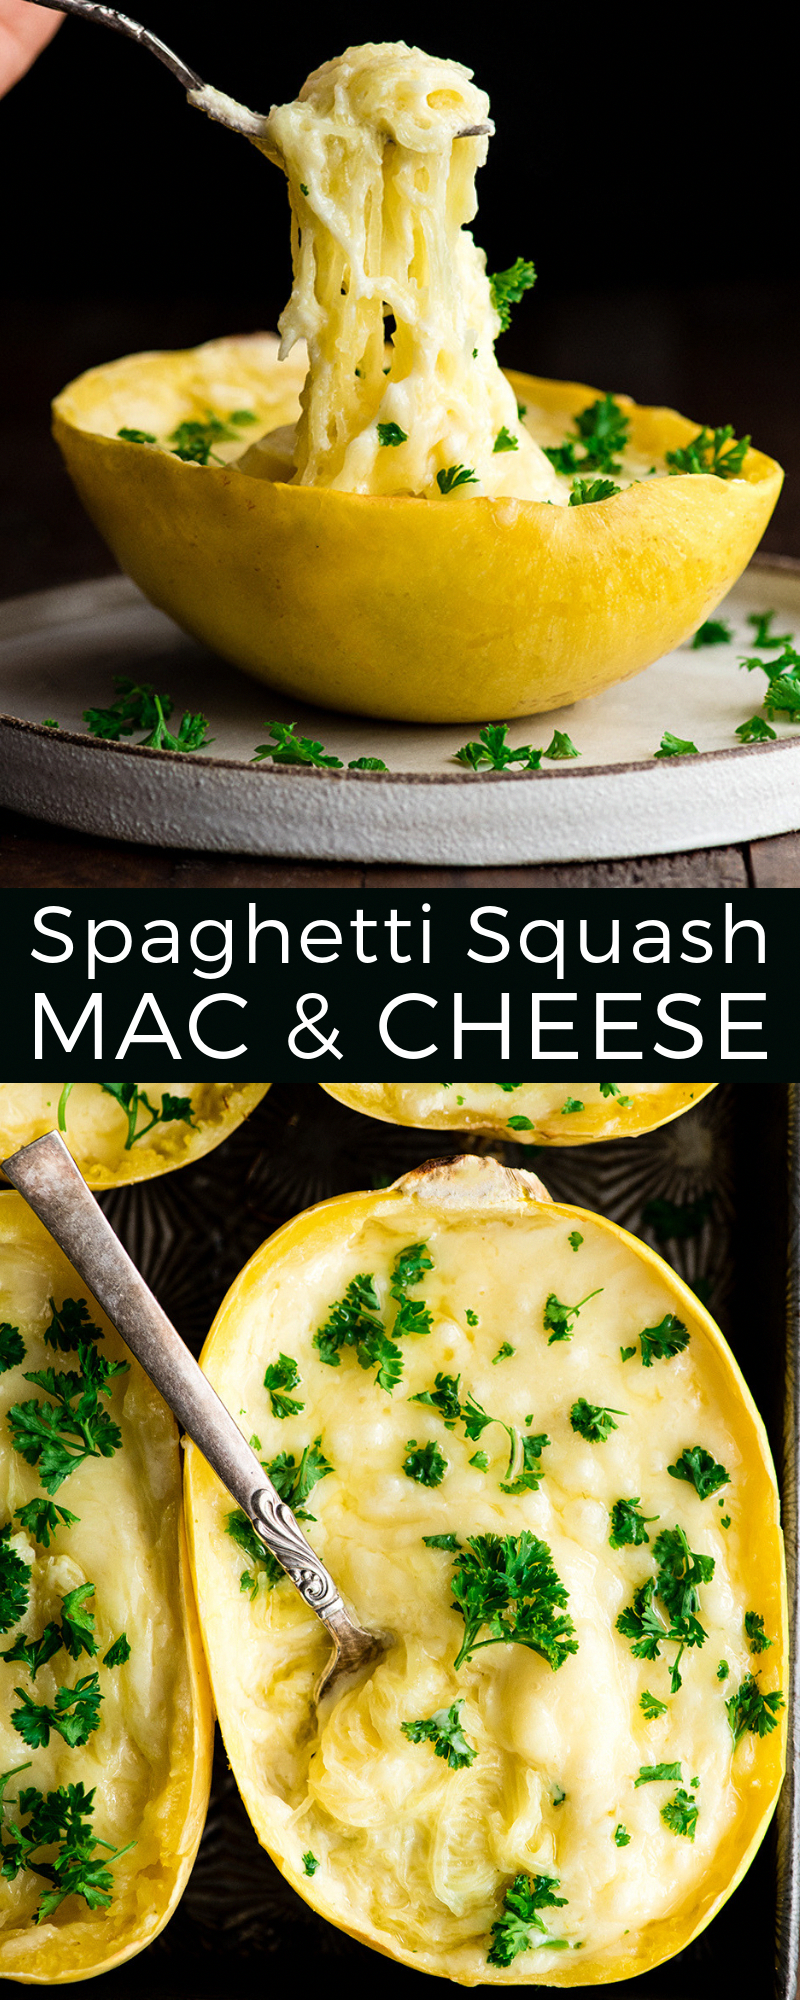 Spaghetti Squash Mac and Cheese - JoyFoodSunshine